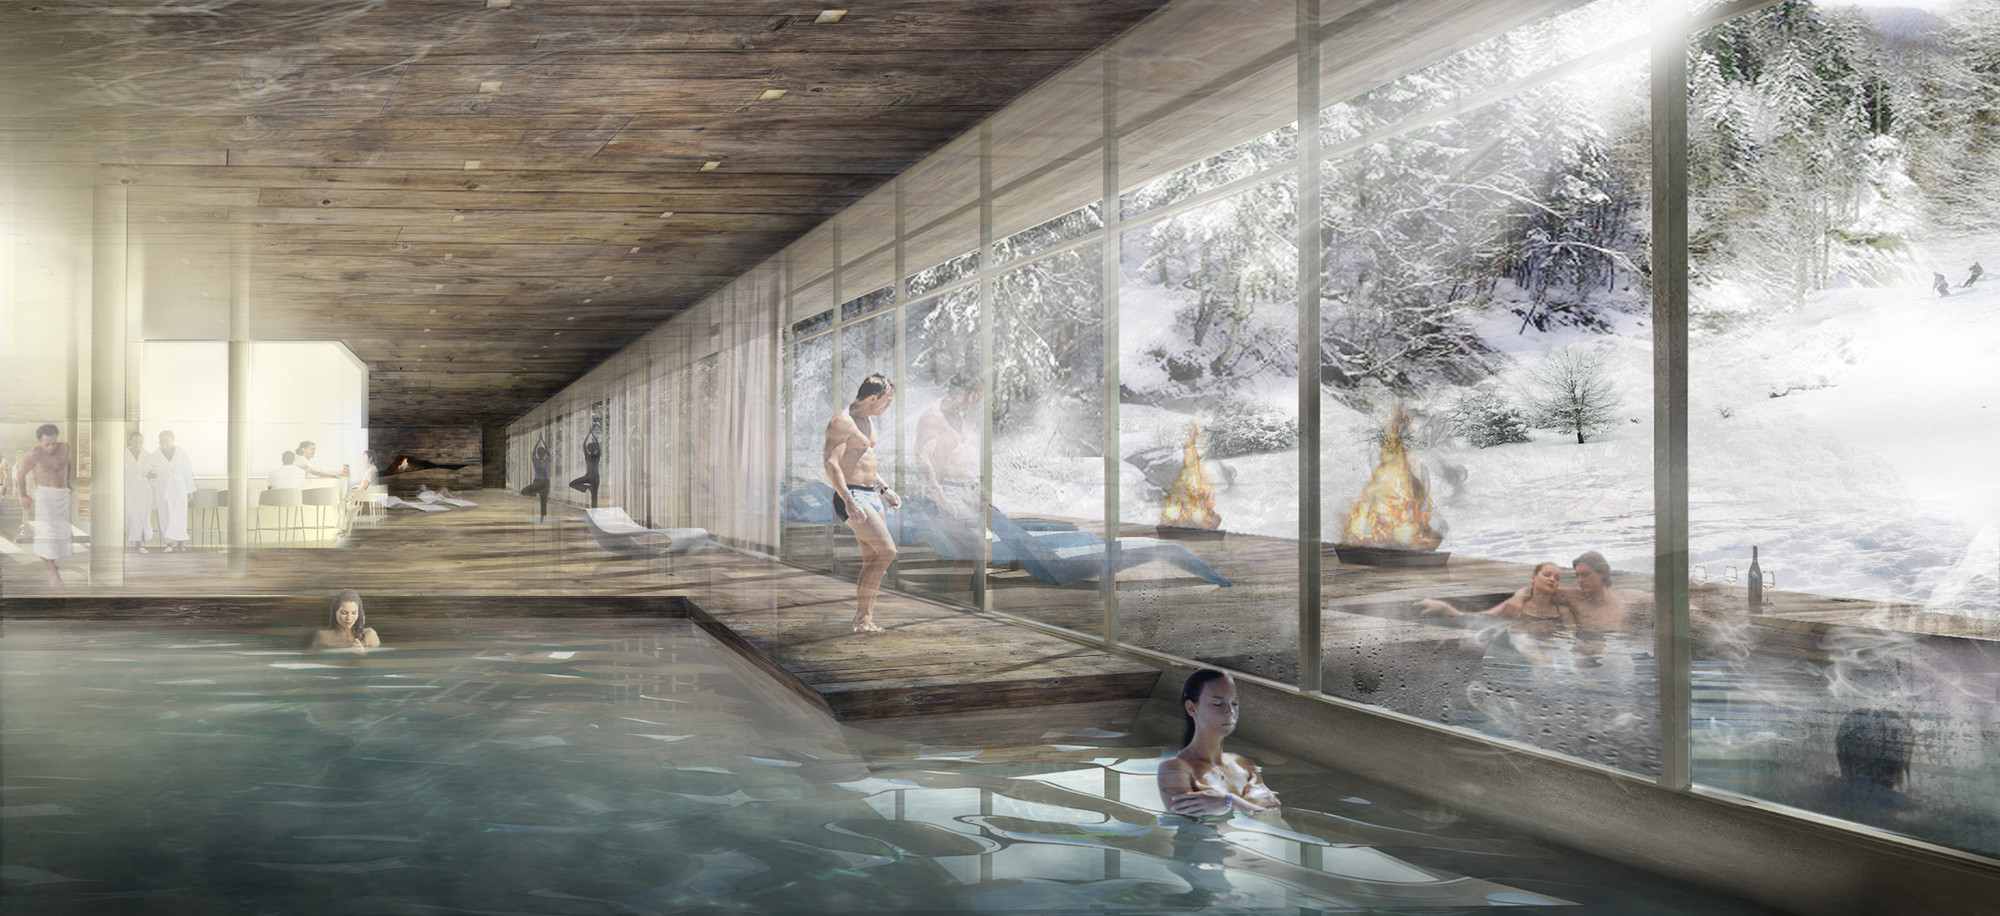 Graft Wins Competition Design Resort In Lofer Archdaily